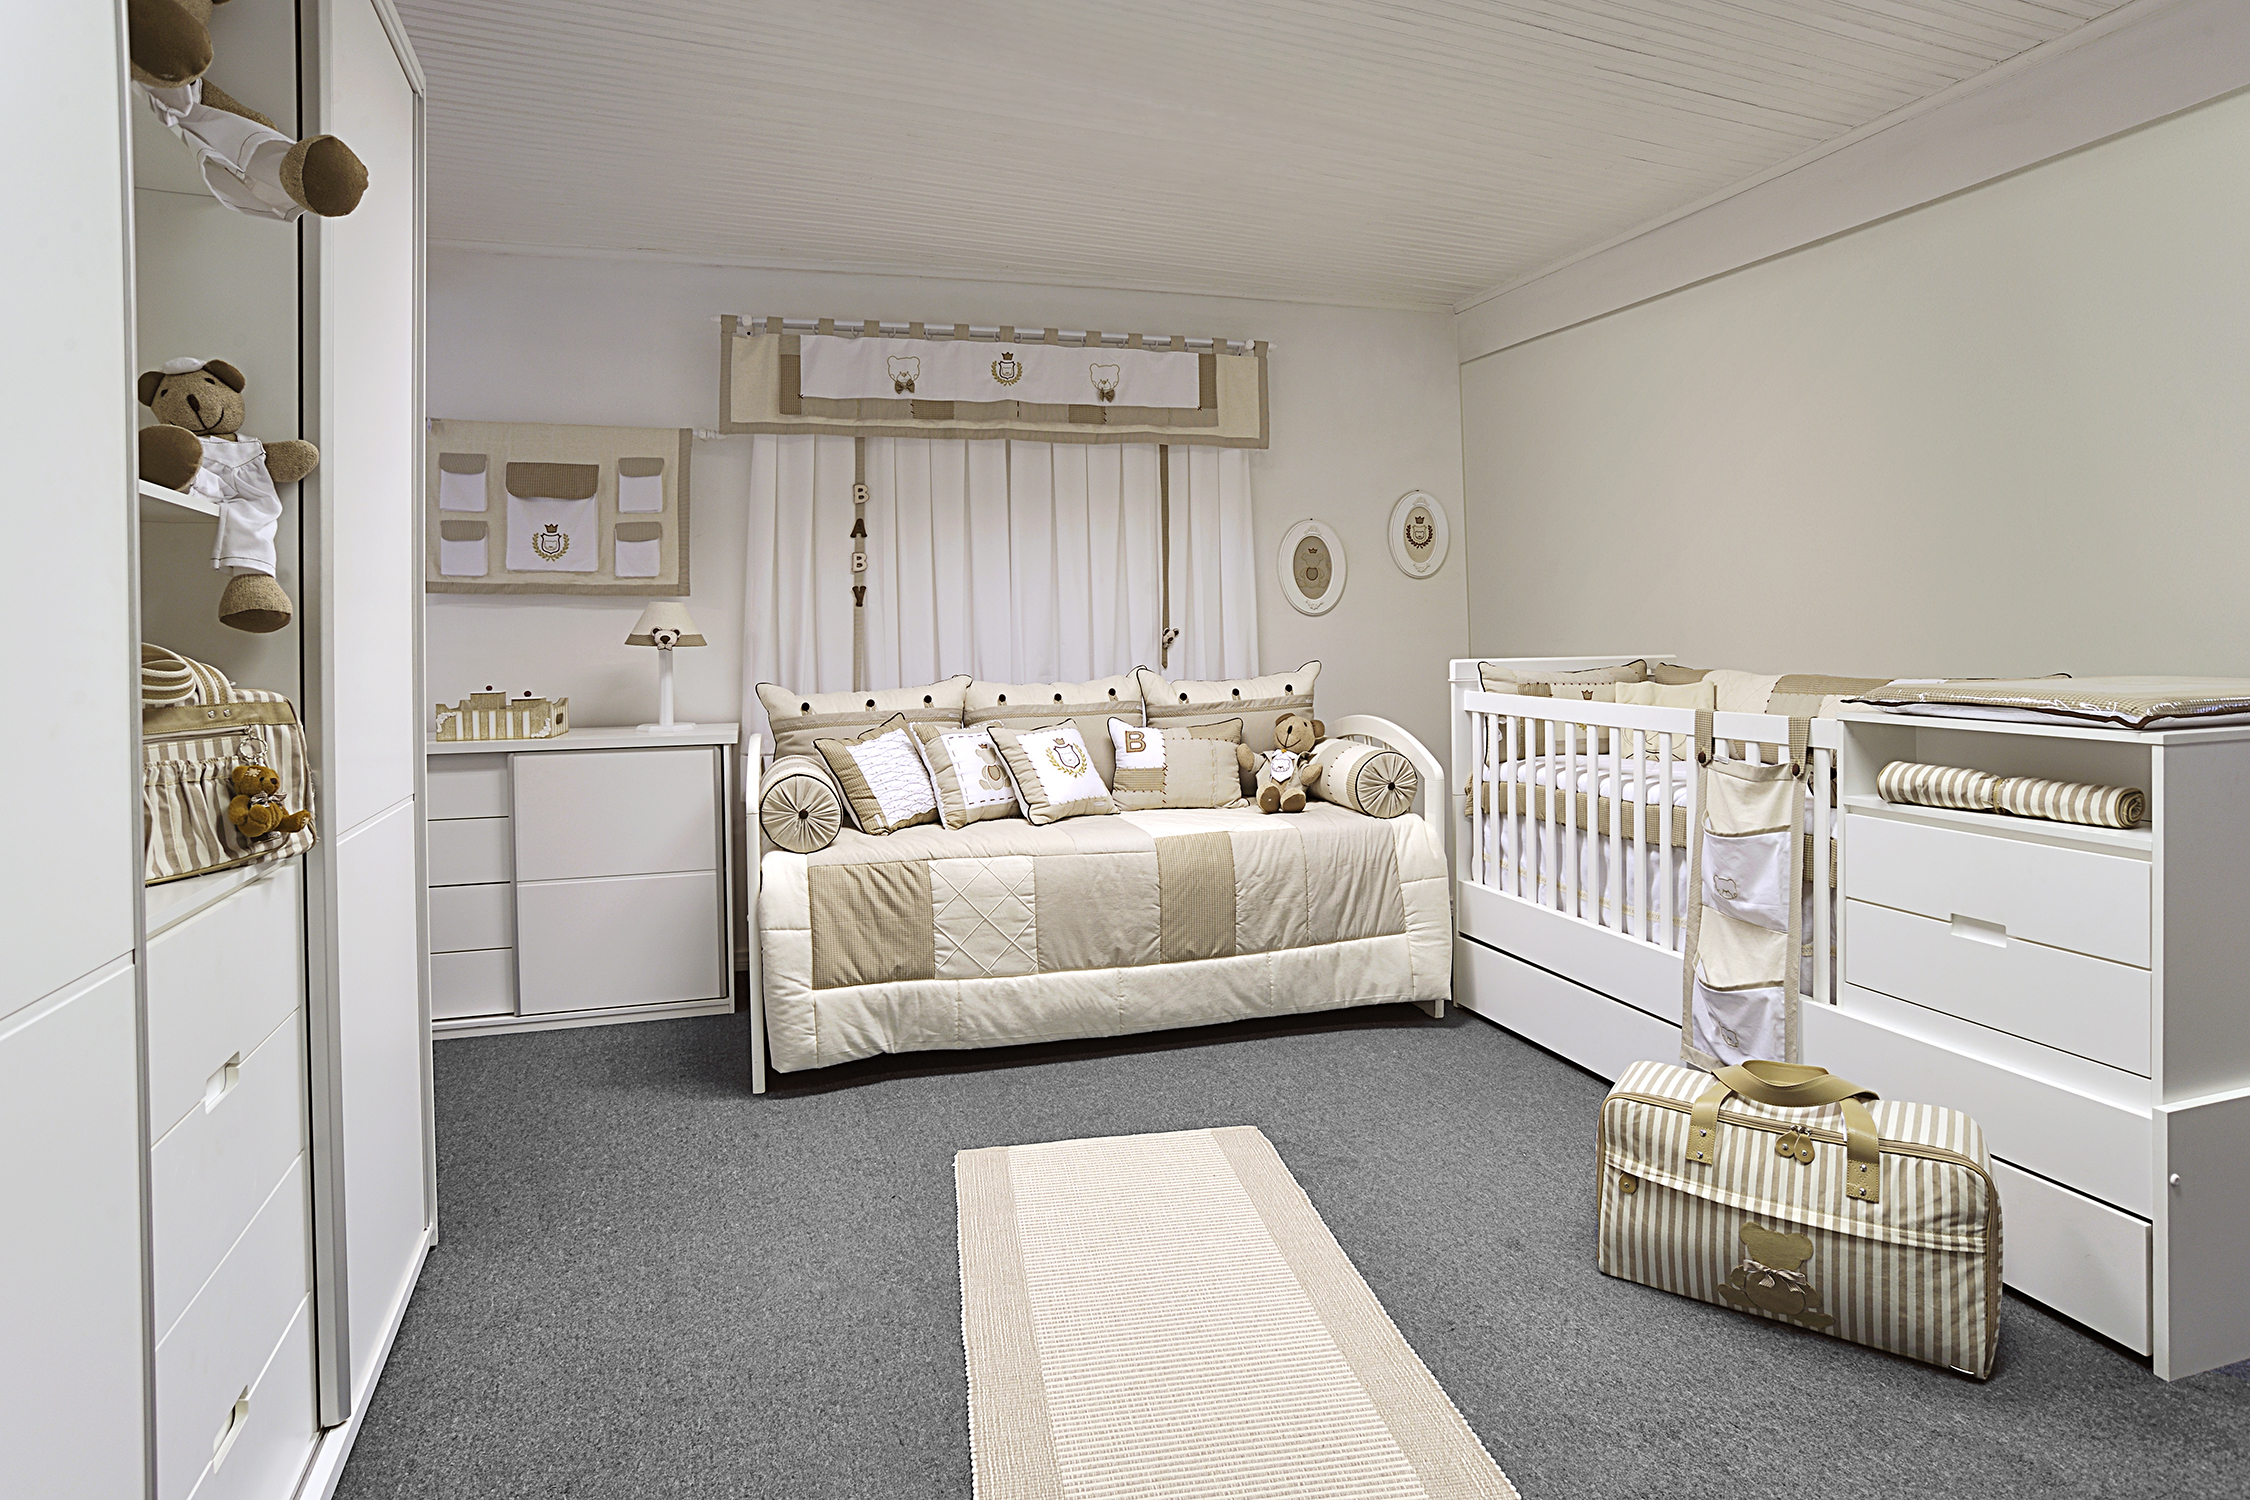 dekorationsideen f r das babyzimmer gesunde schwangerschaft. Black Bedroom Furniture Sets. Home Design Ideas